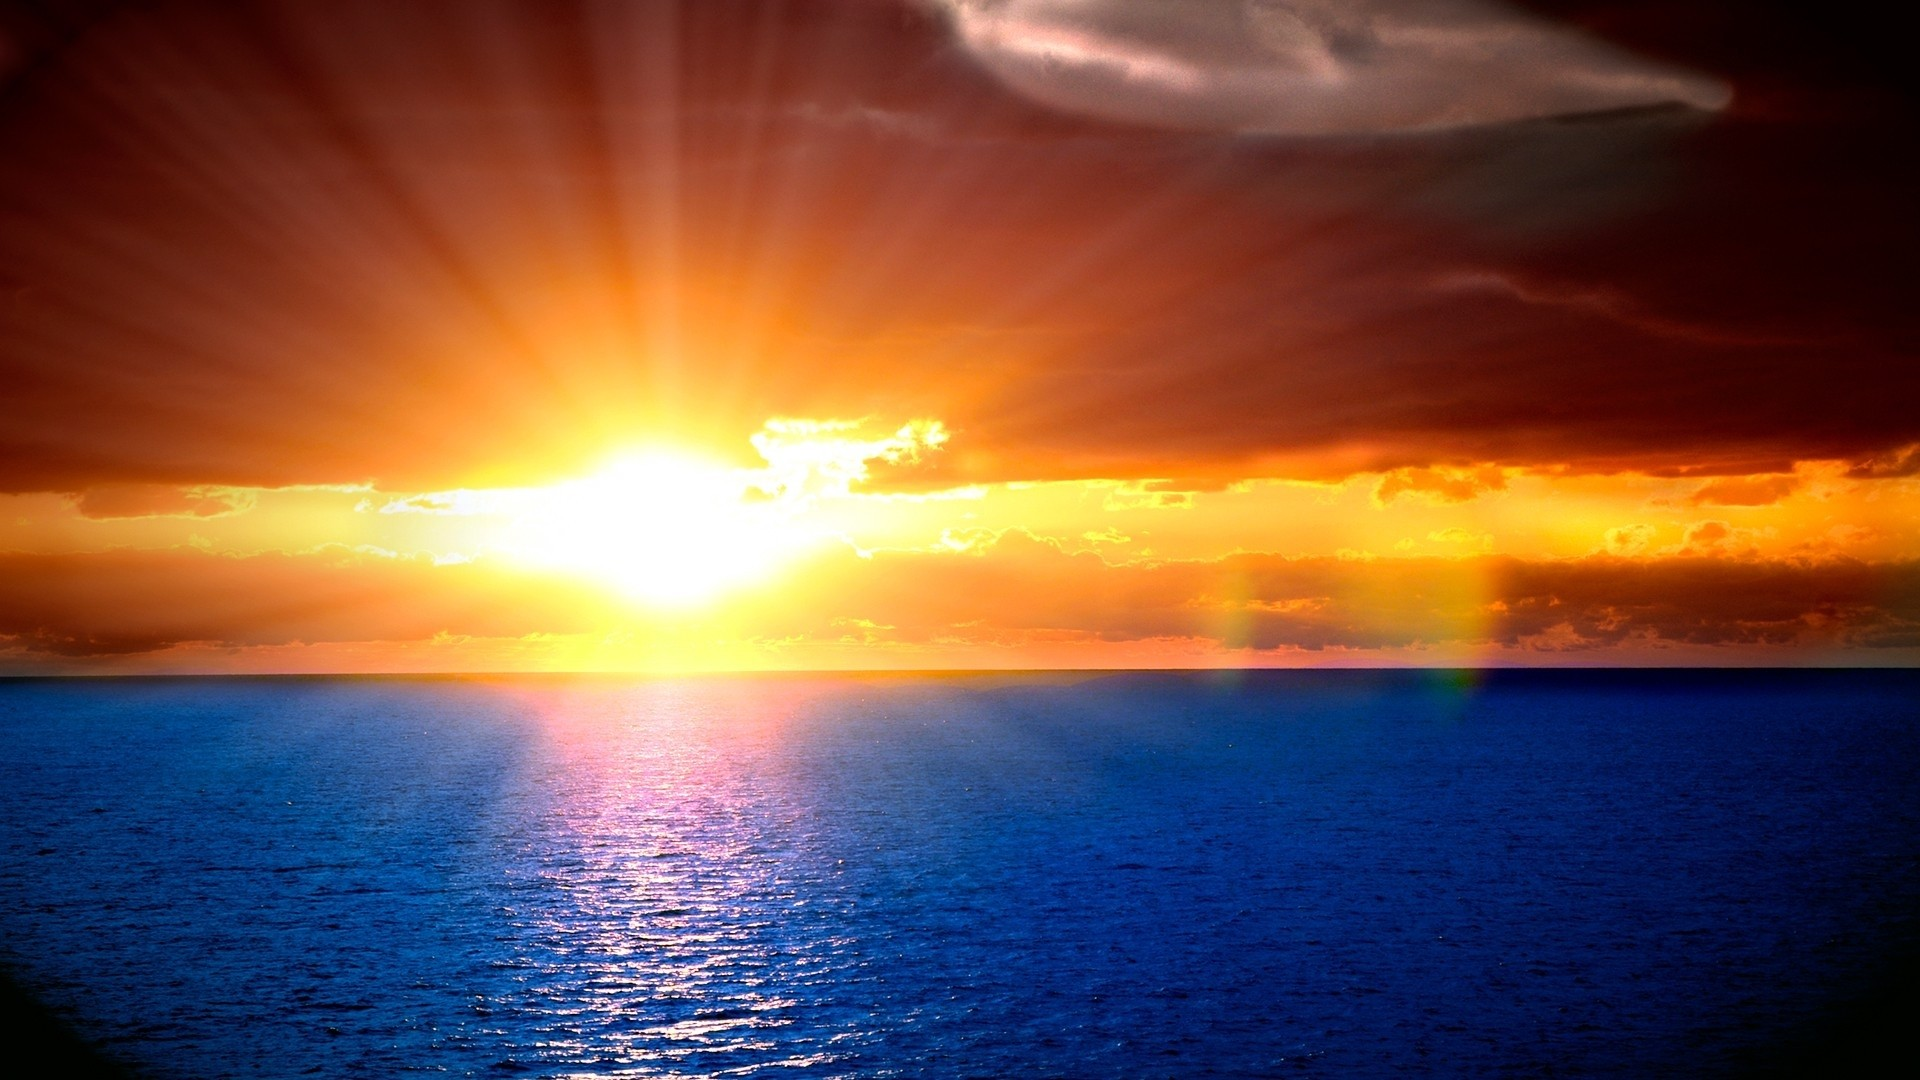 Sunset On The Ocean Wallpaper Cool #le4b2x px 981.43 KB Nature &  Landscape Photography